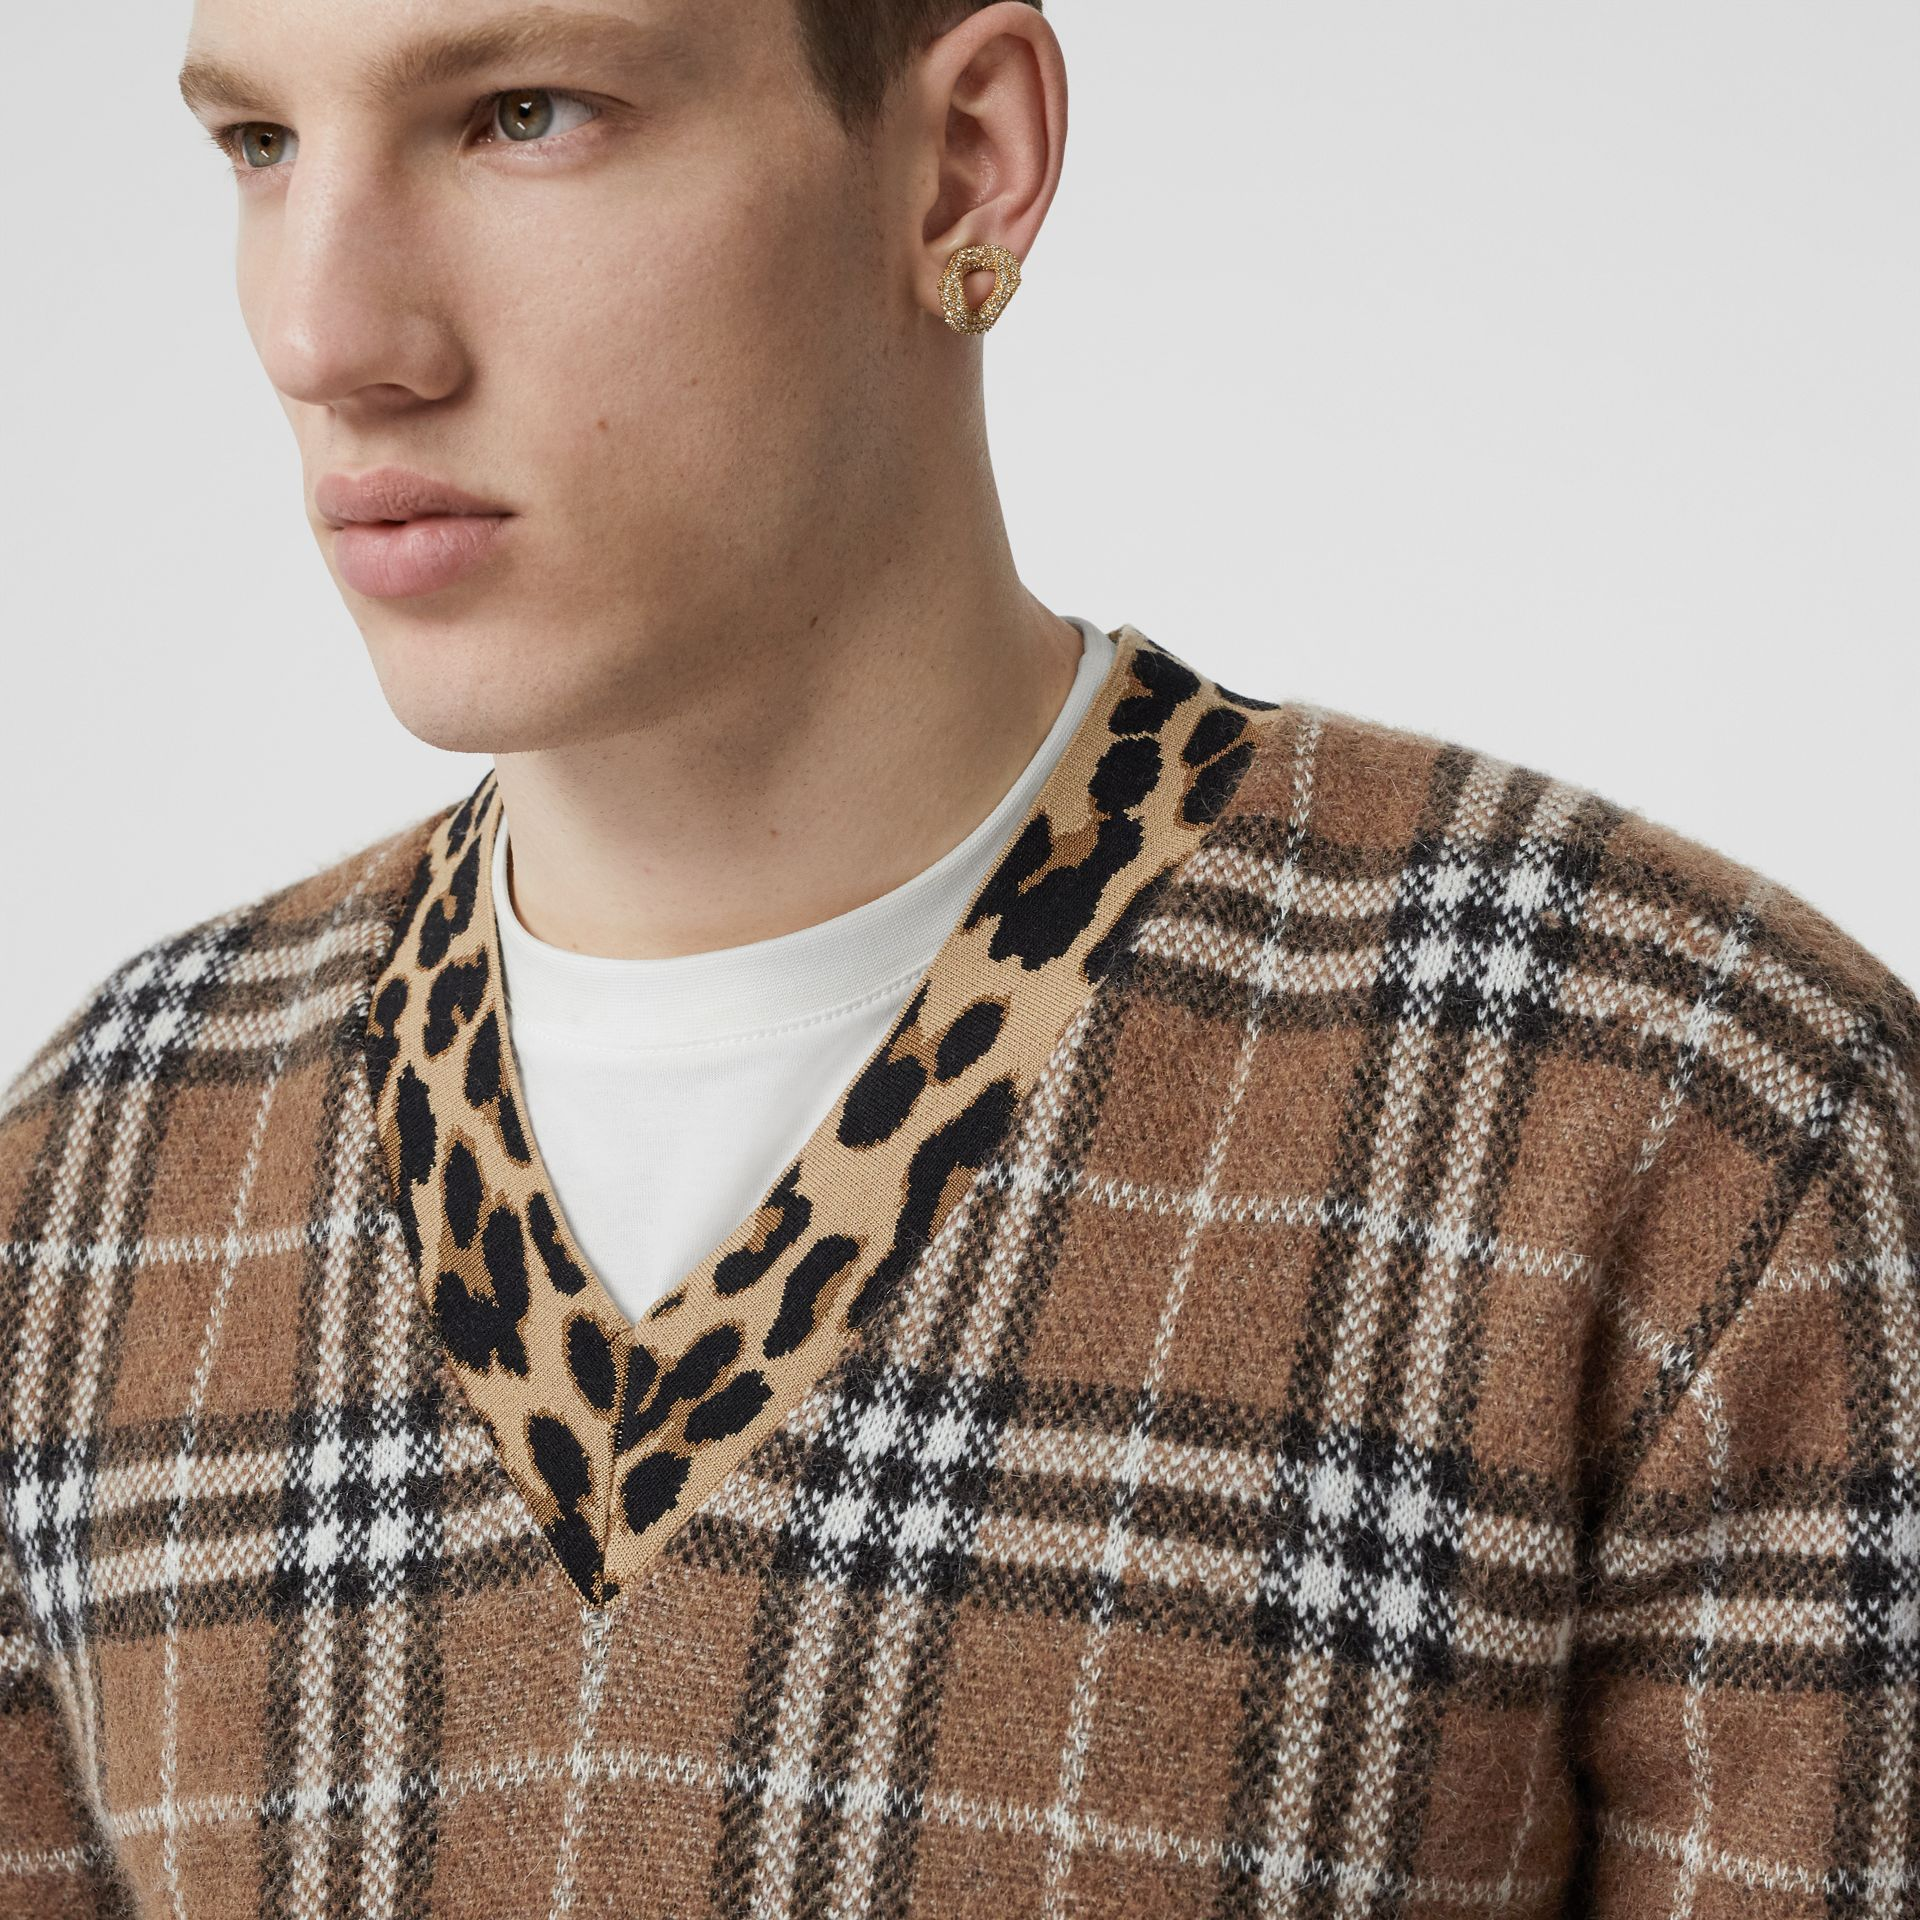 Leopard Detail Vintage Check Cashmere Blend Sweater in Warm Walnut - Men | Burberry - gallery image 5